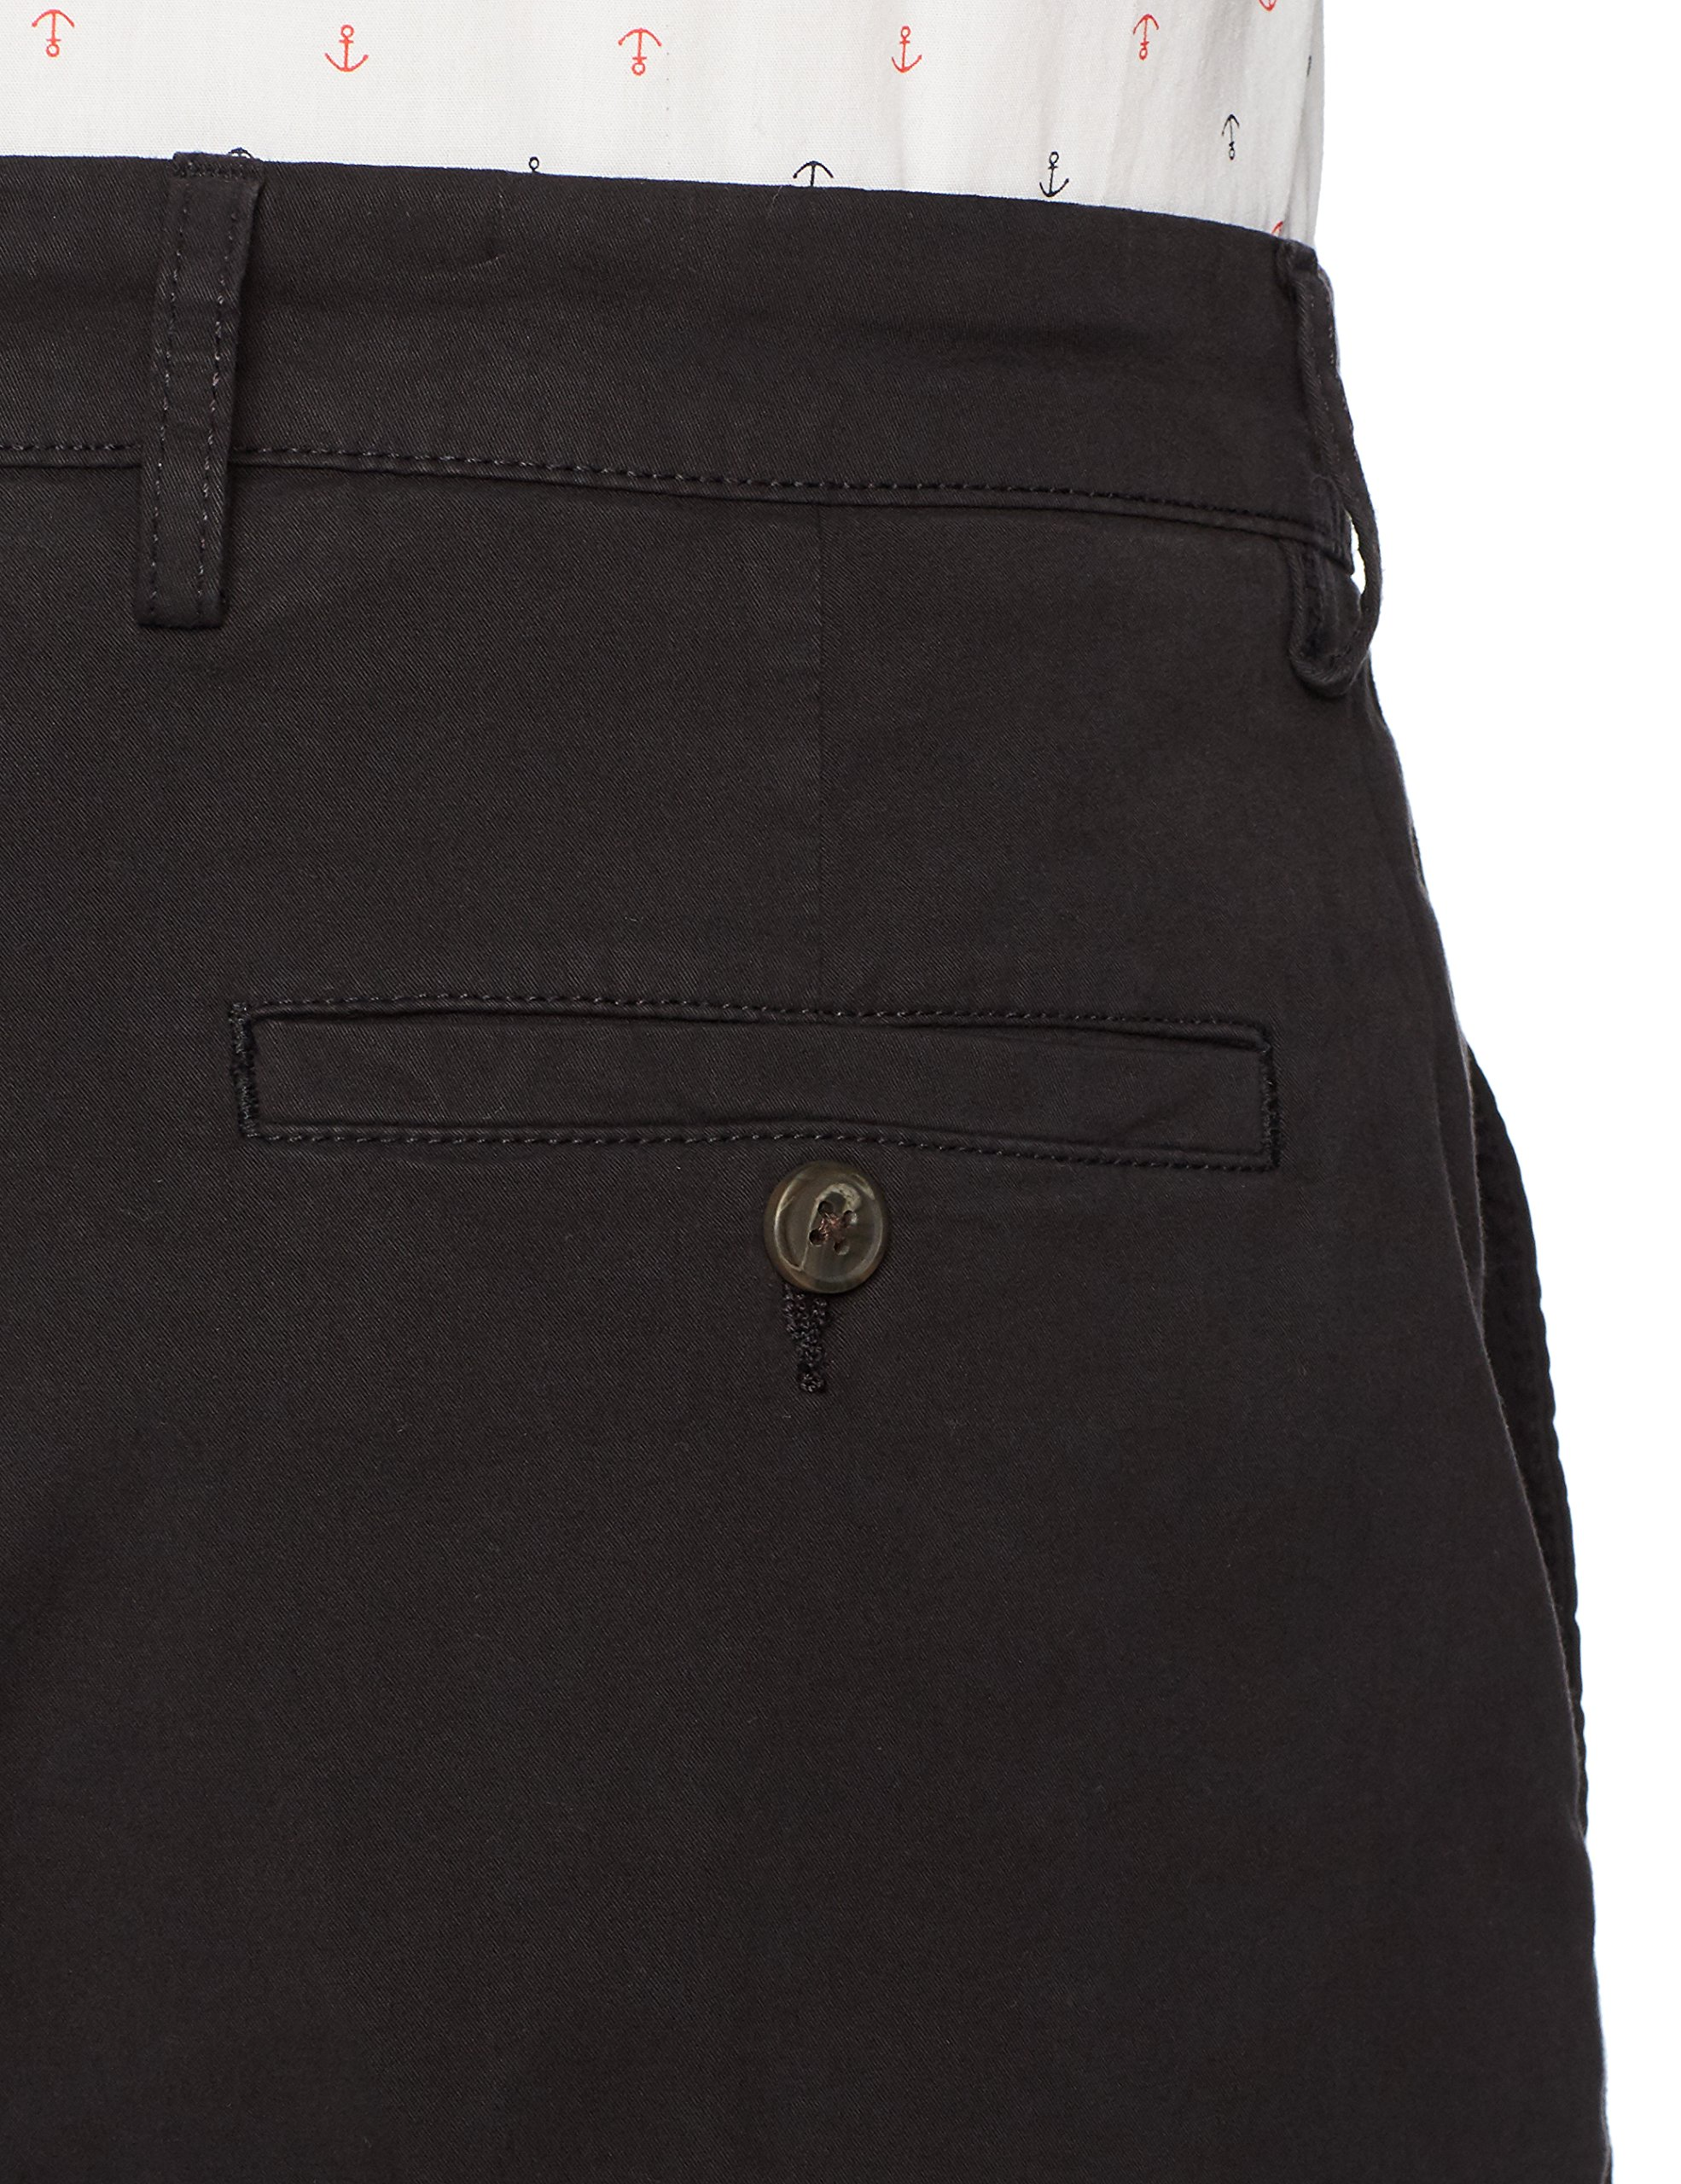 Goodthreads Men's 7'' Inseam Flat-Front Stretch Chino Short, Black, 32 by Goodthreads (Image #5)